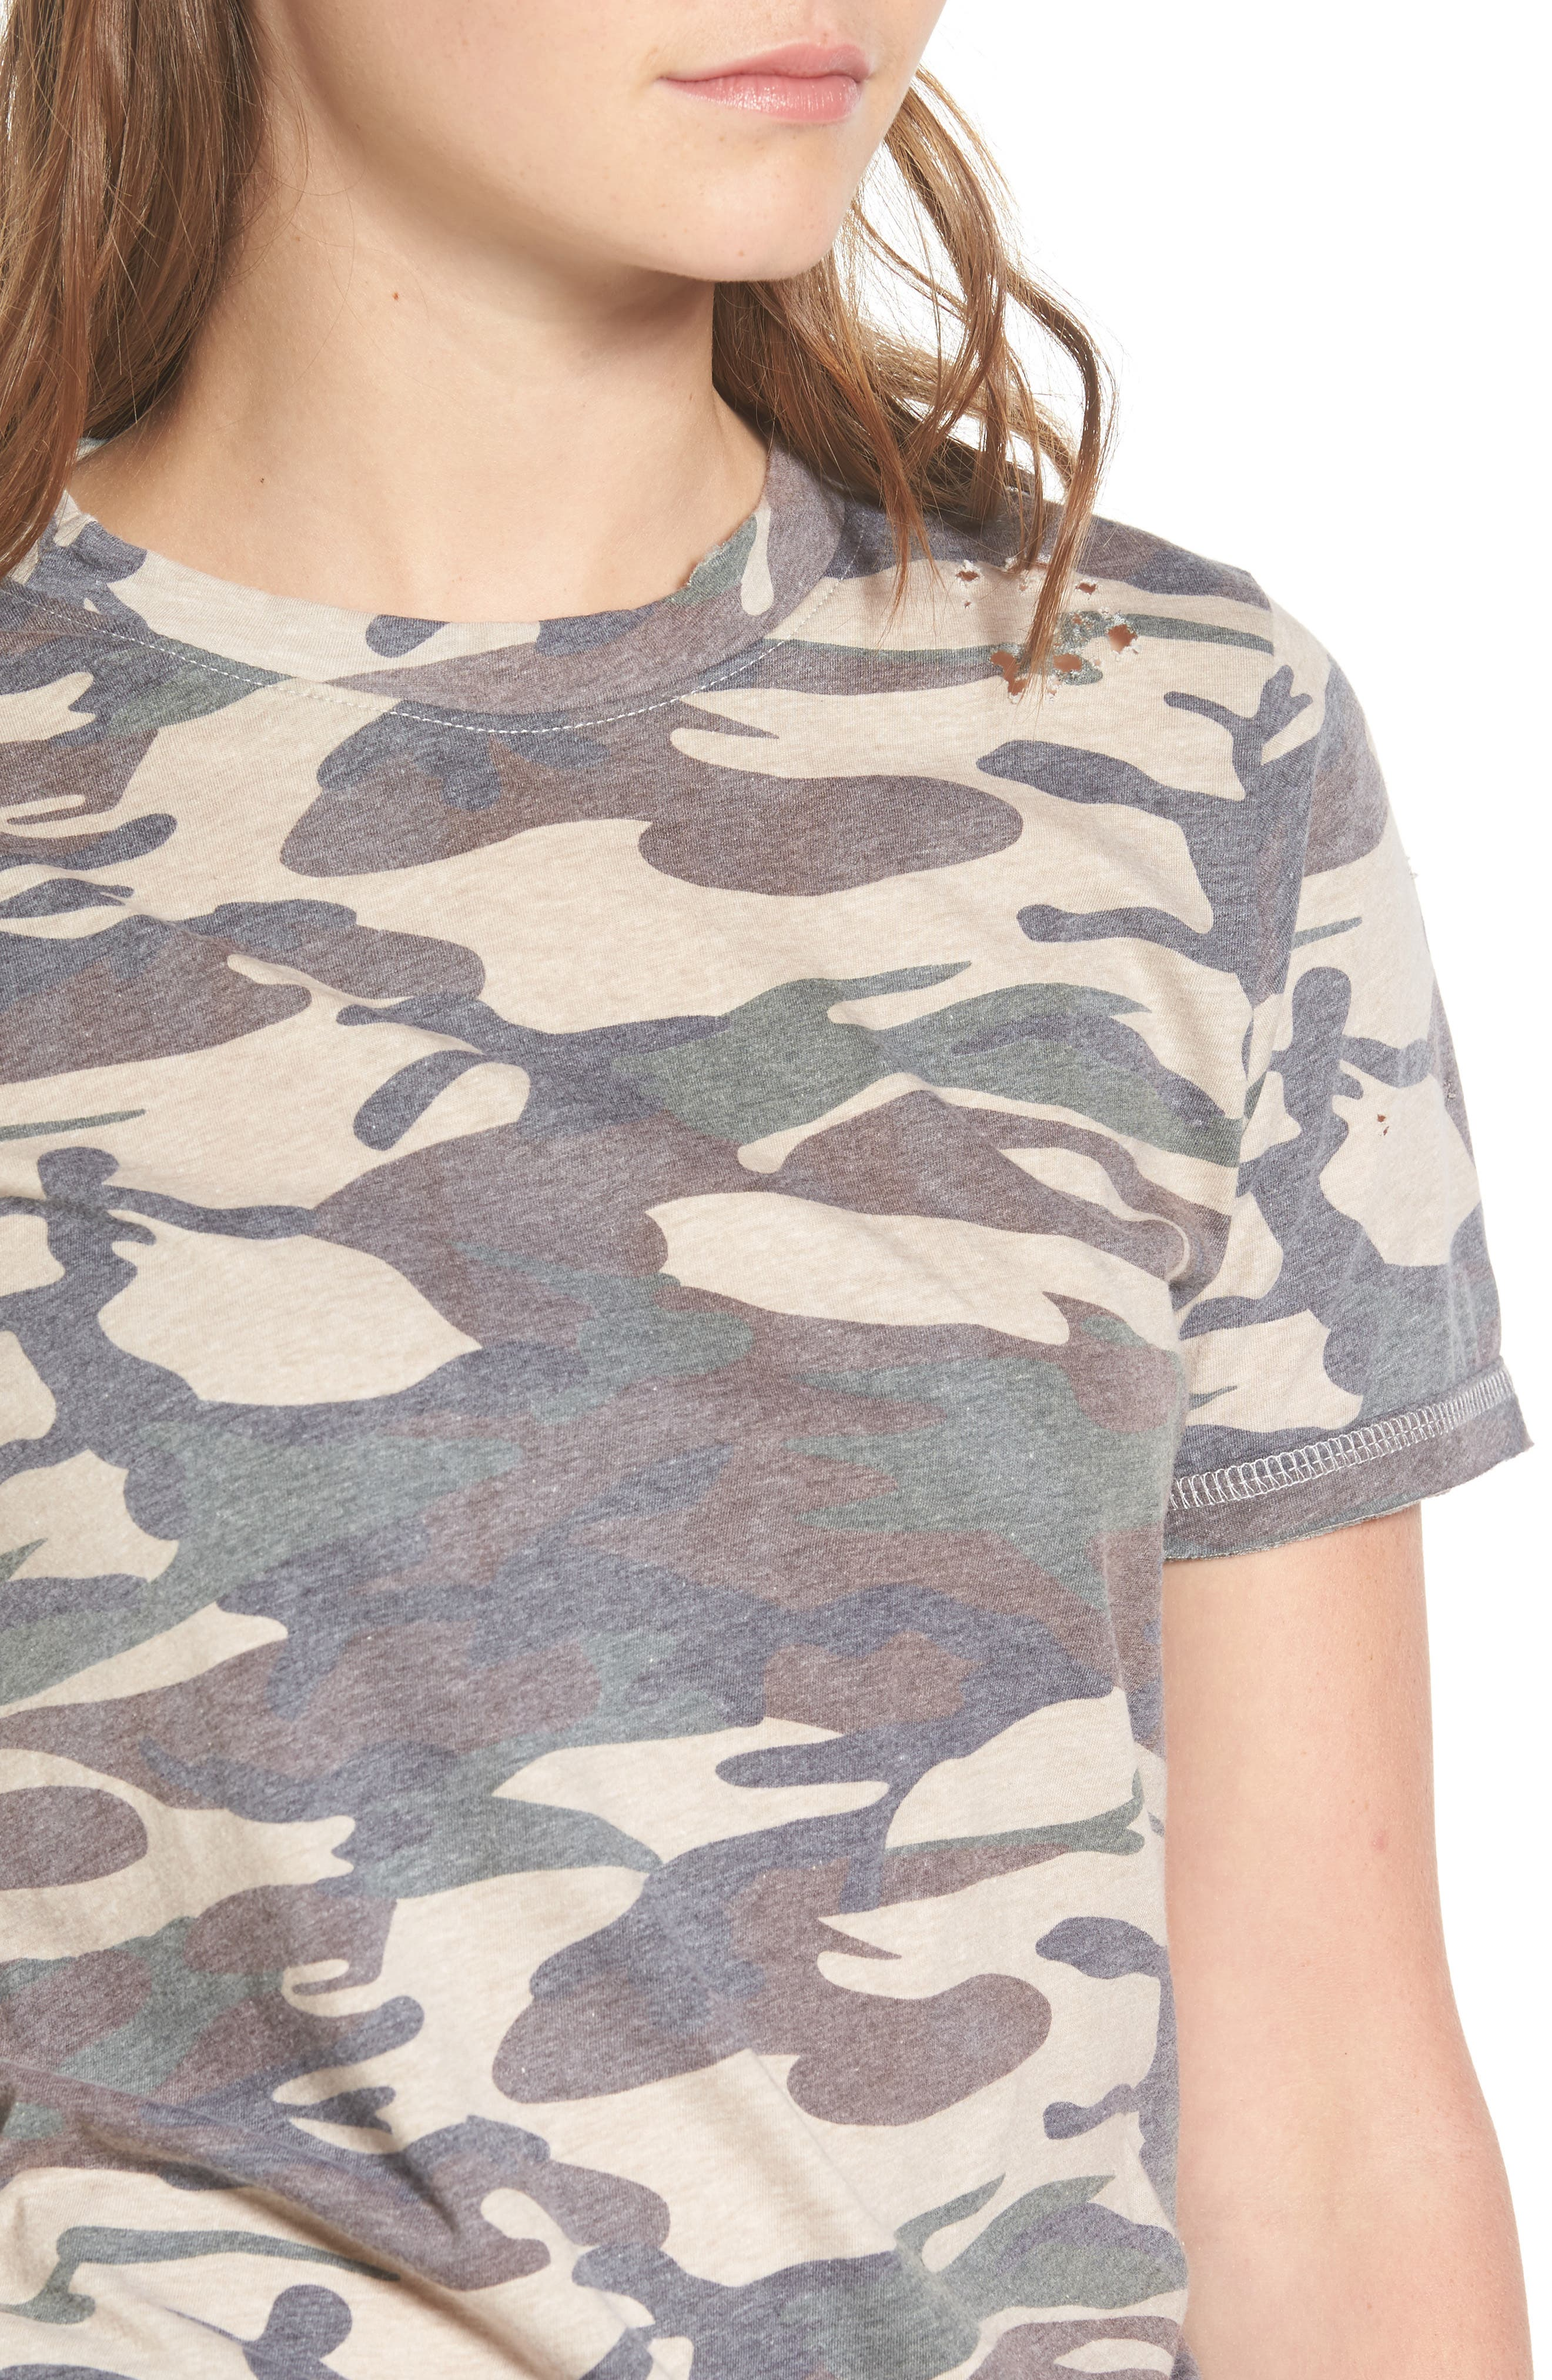 Distressed Camo Tee,                             Alternate thumbnail 4, color,                             300